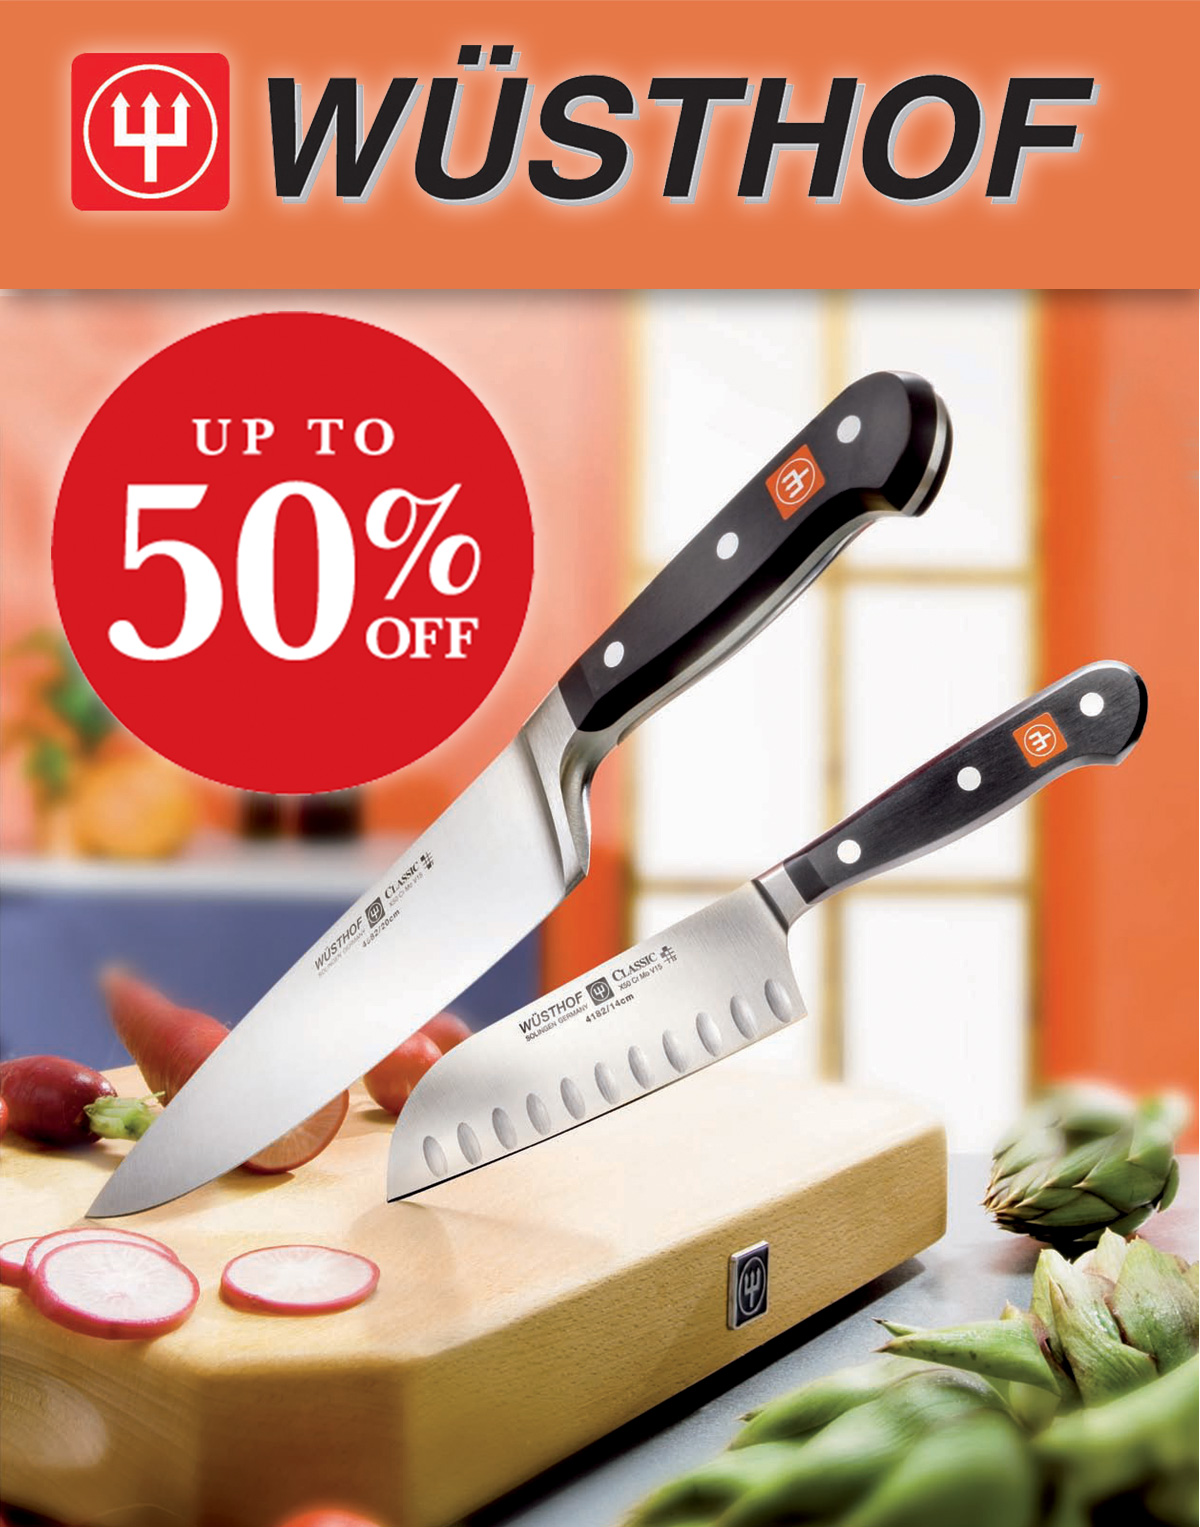 Up to Fifty Percent off Wusthof - Order yours today!